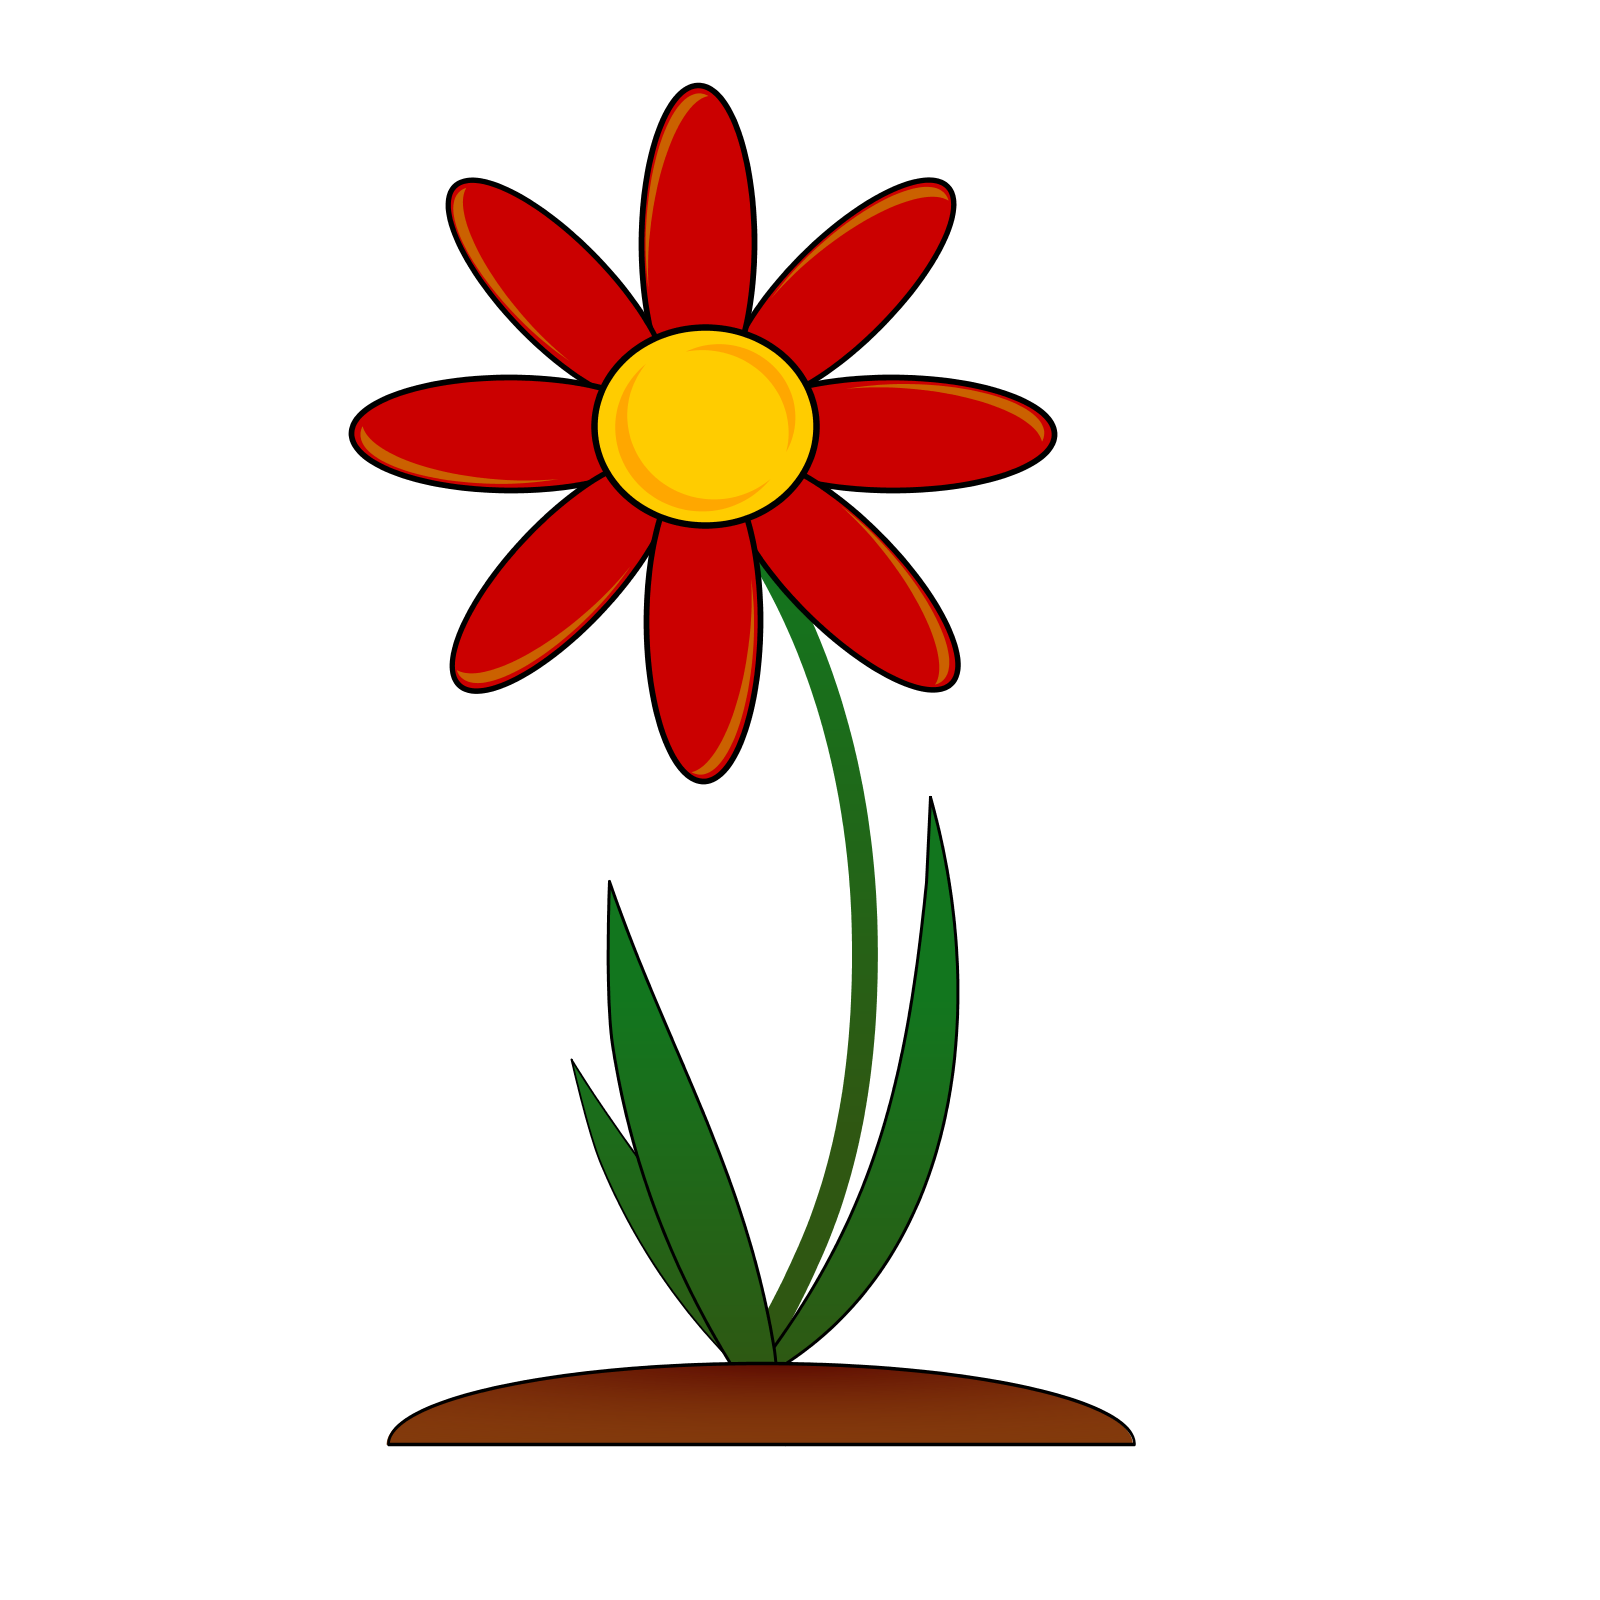 Drawing wallpapers flower. Clip art structure